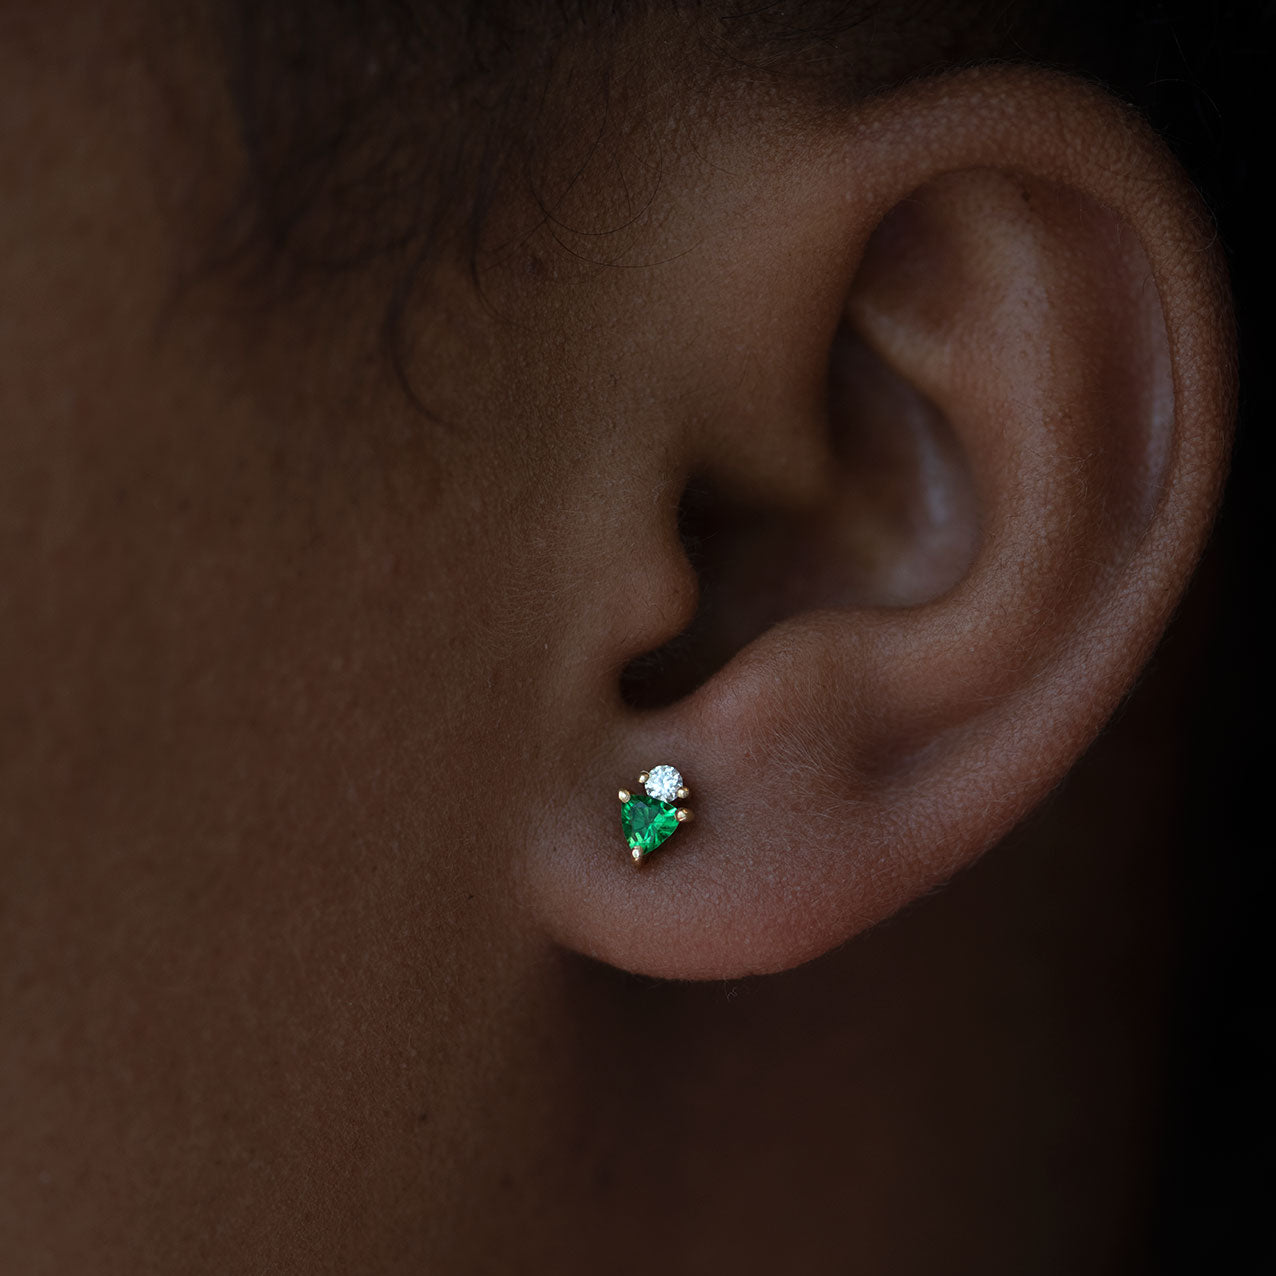 Bright Green Tsavorite Stud Earrings with Diamonds on model